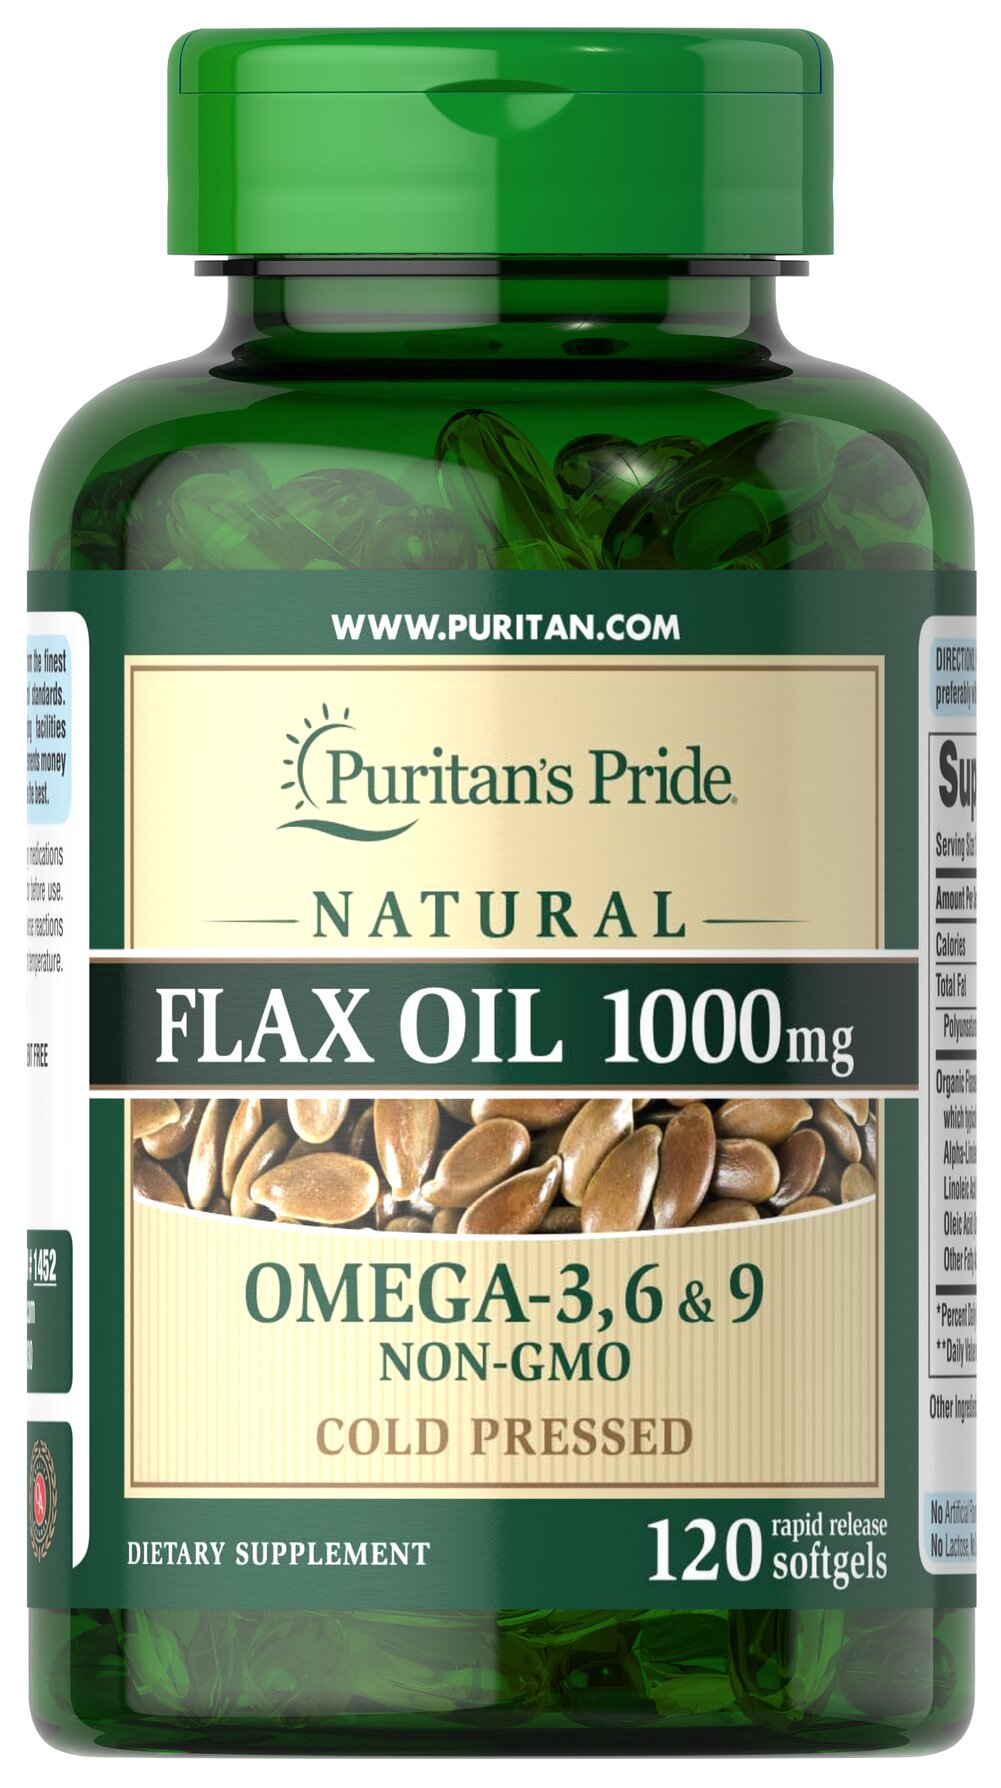 Natural Flax Oil 1000 mg  120 Rapid Release Softgels 1000 mg $12.99